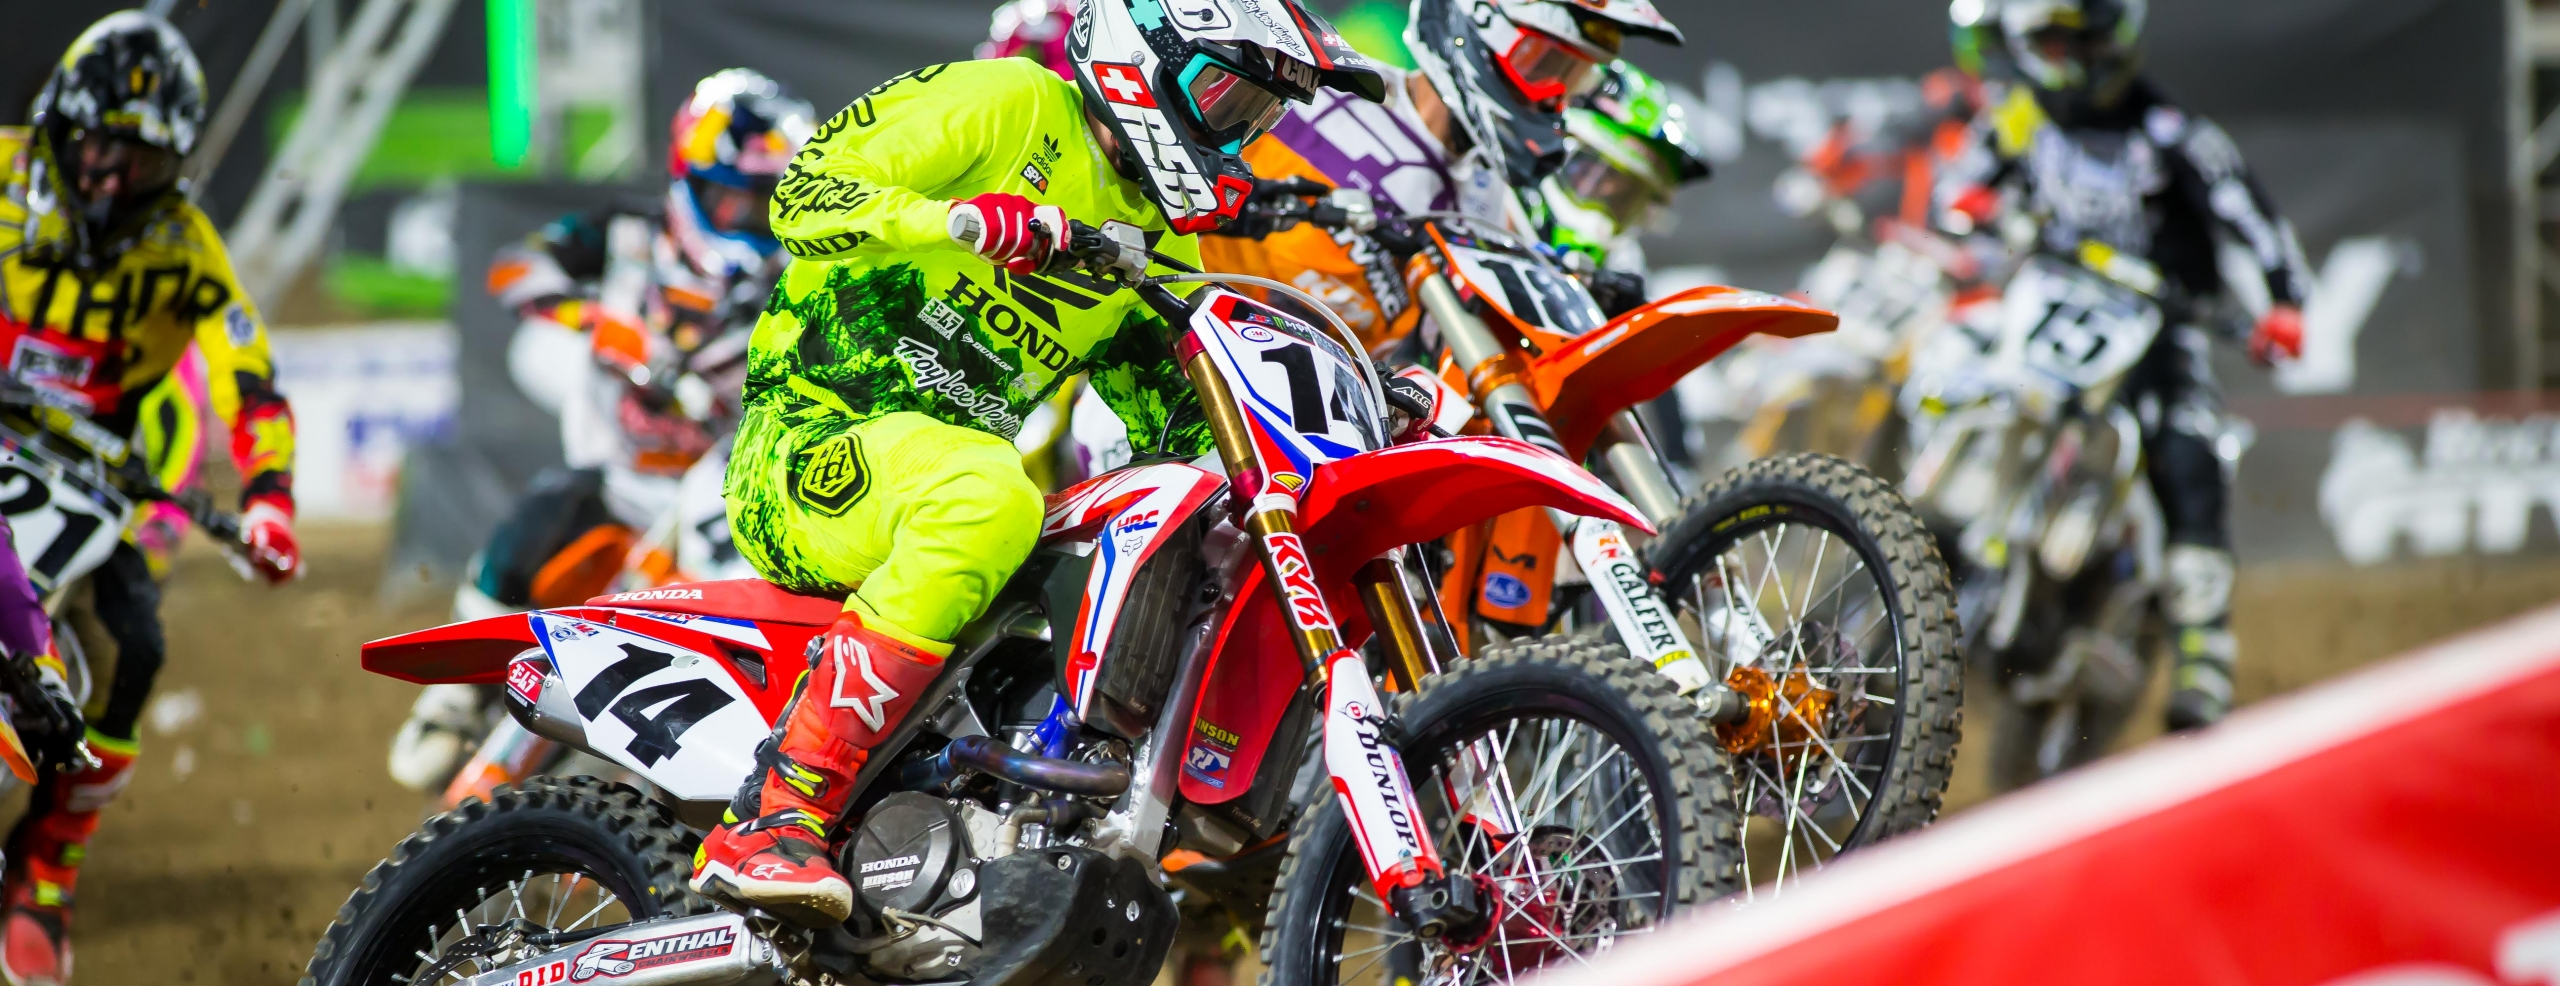 Fifth for Seely at Minneapolis Supercross